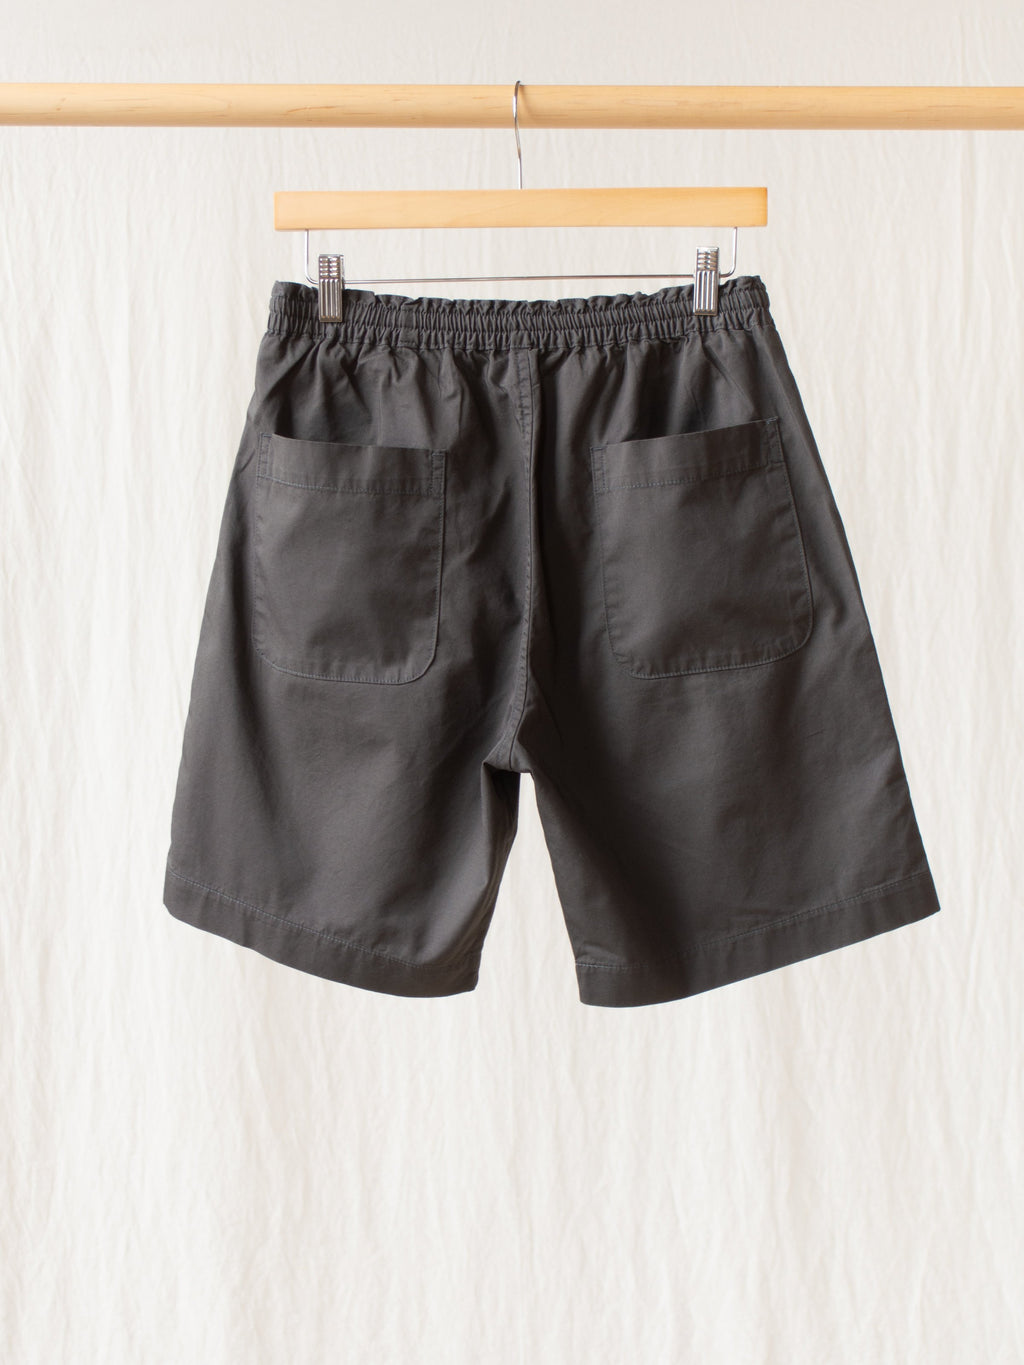 Namu Shop - Fujito Easy Shorts - Charcoal